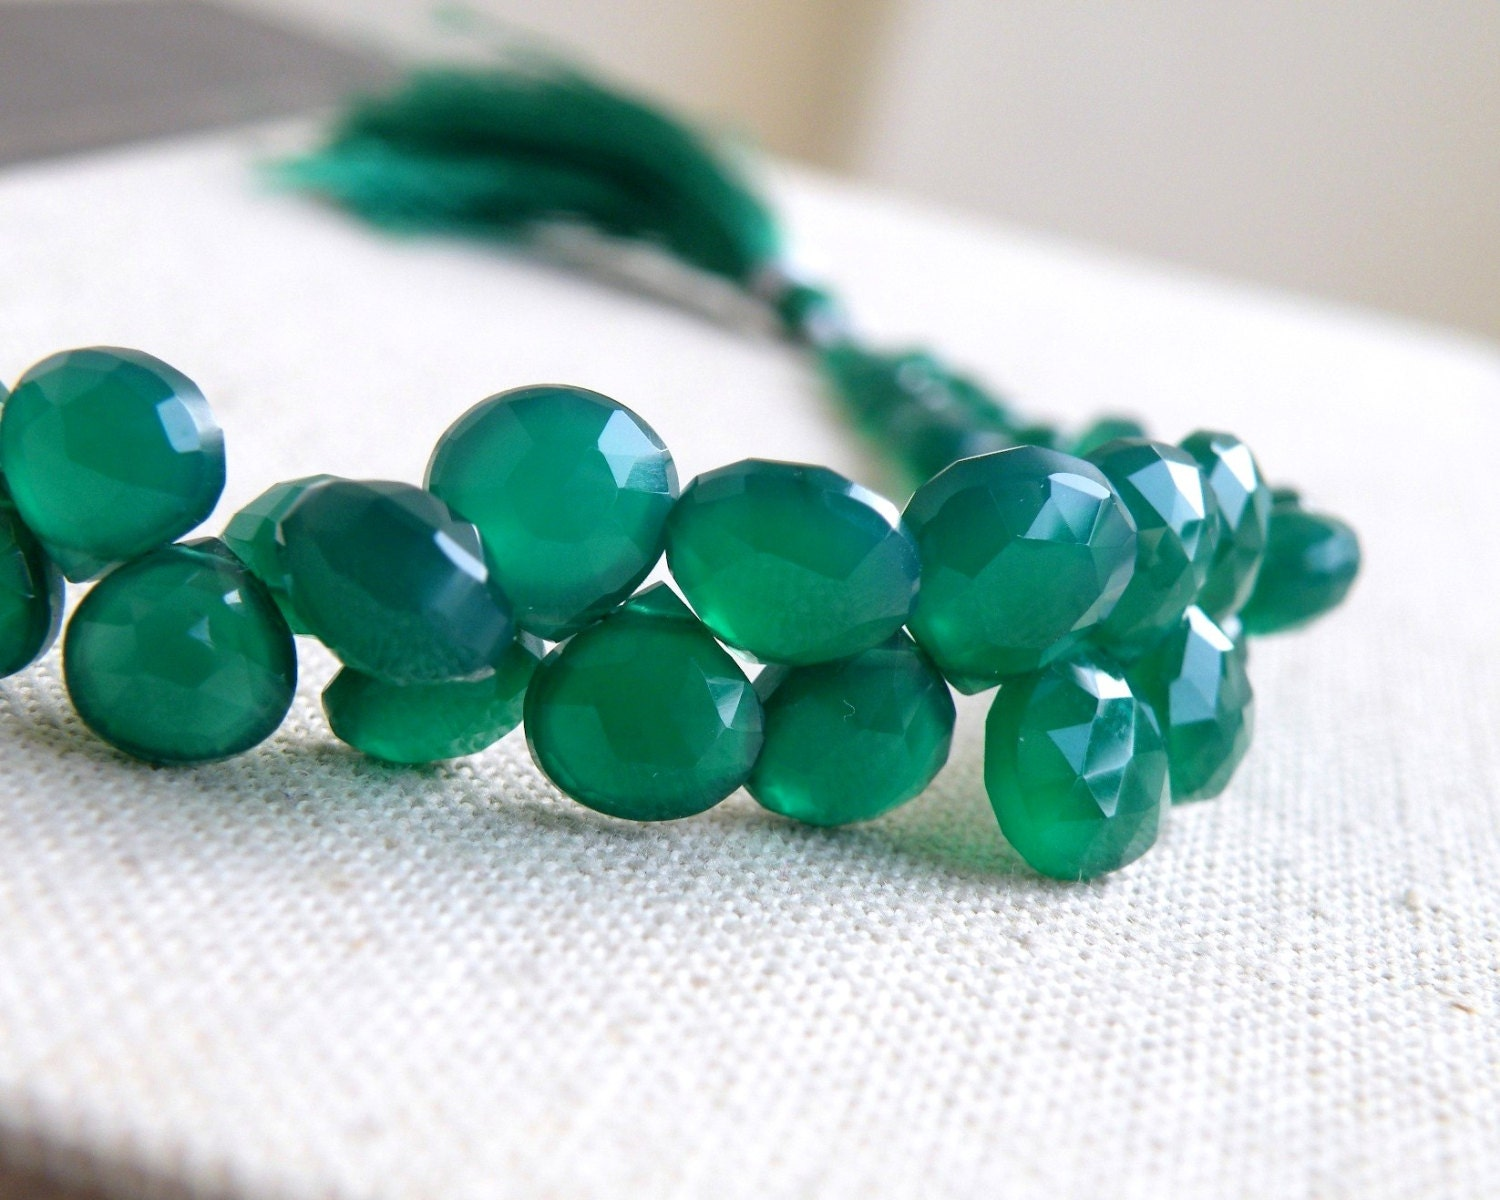 Green Onyx Stone : Green onyx gemstone briolette faceted heart emerald